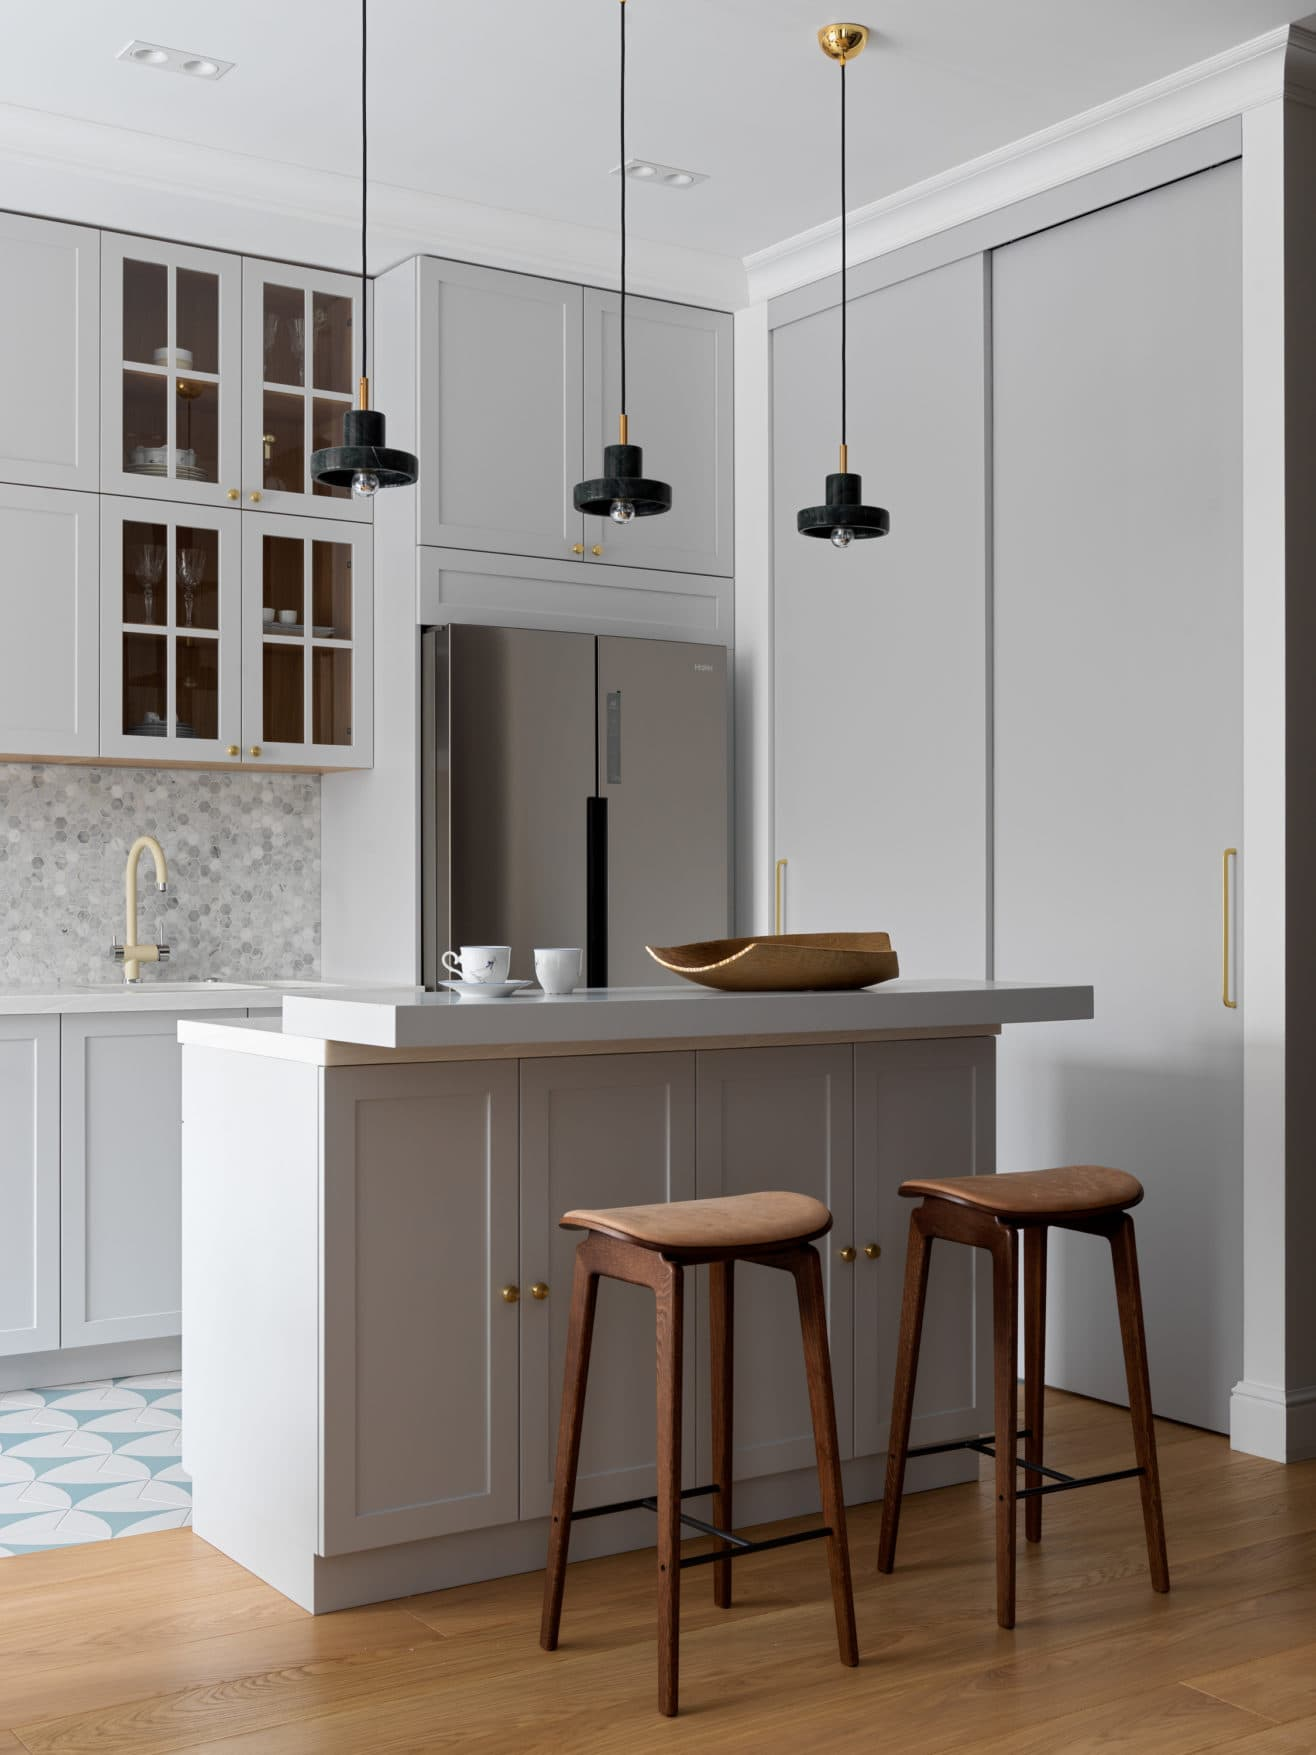 this is a minimal industrial kitchen featured in ad magazine